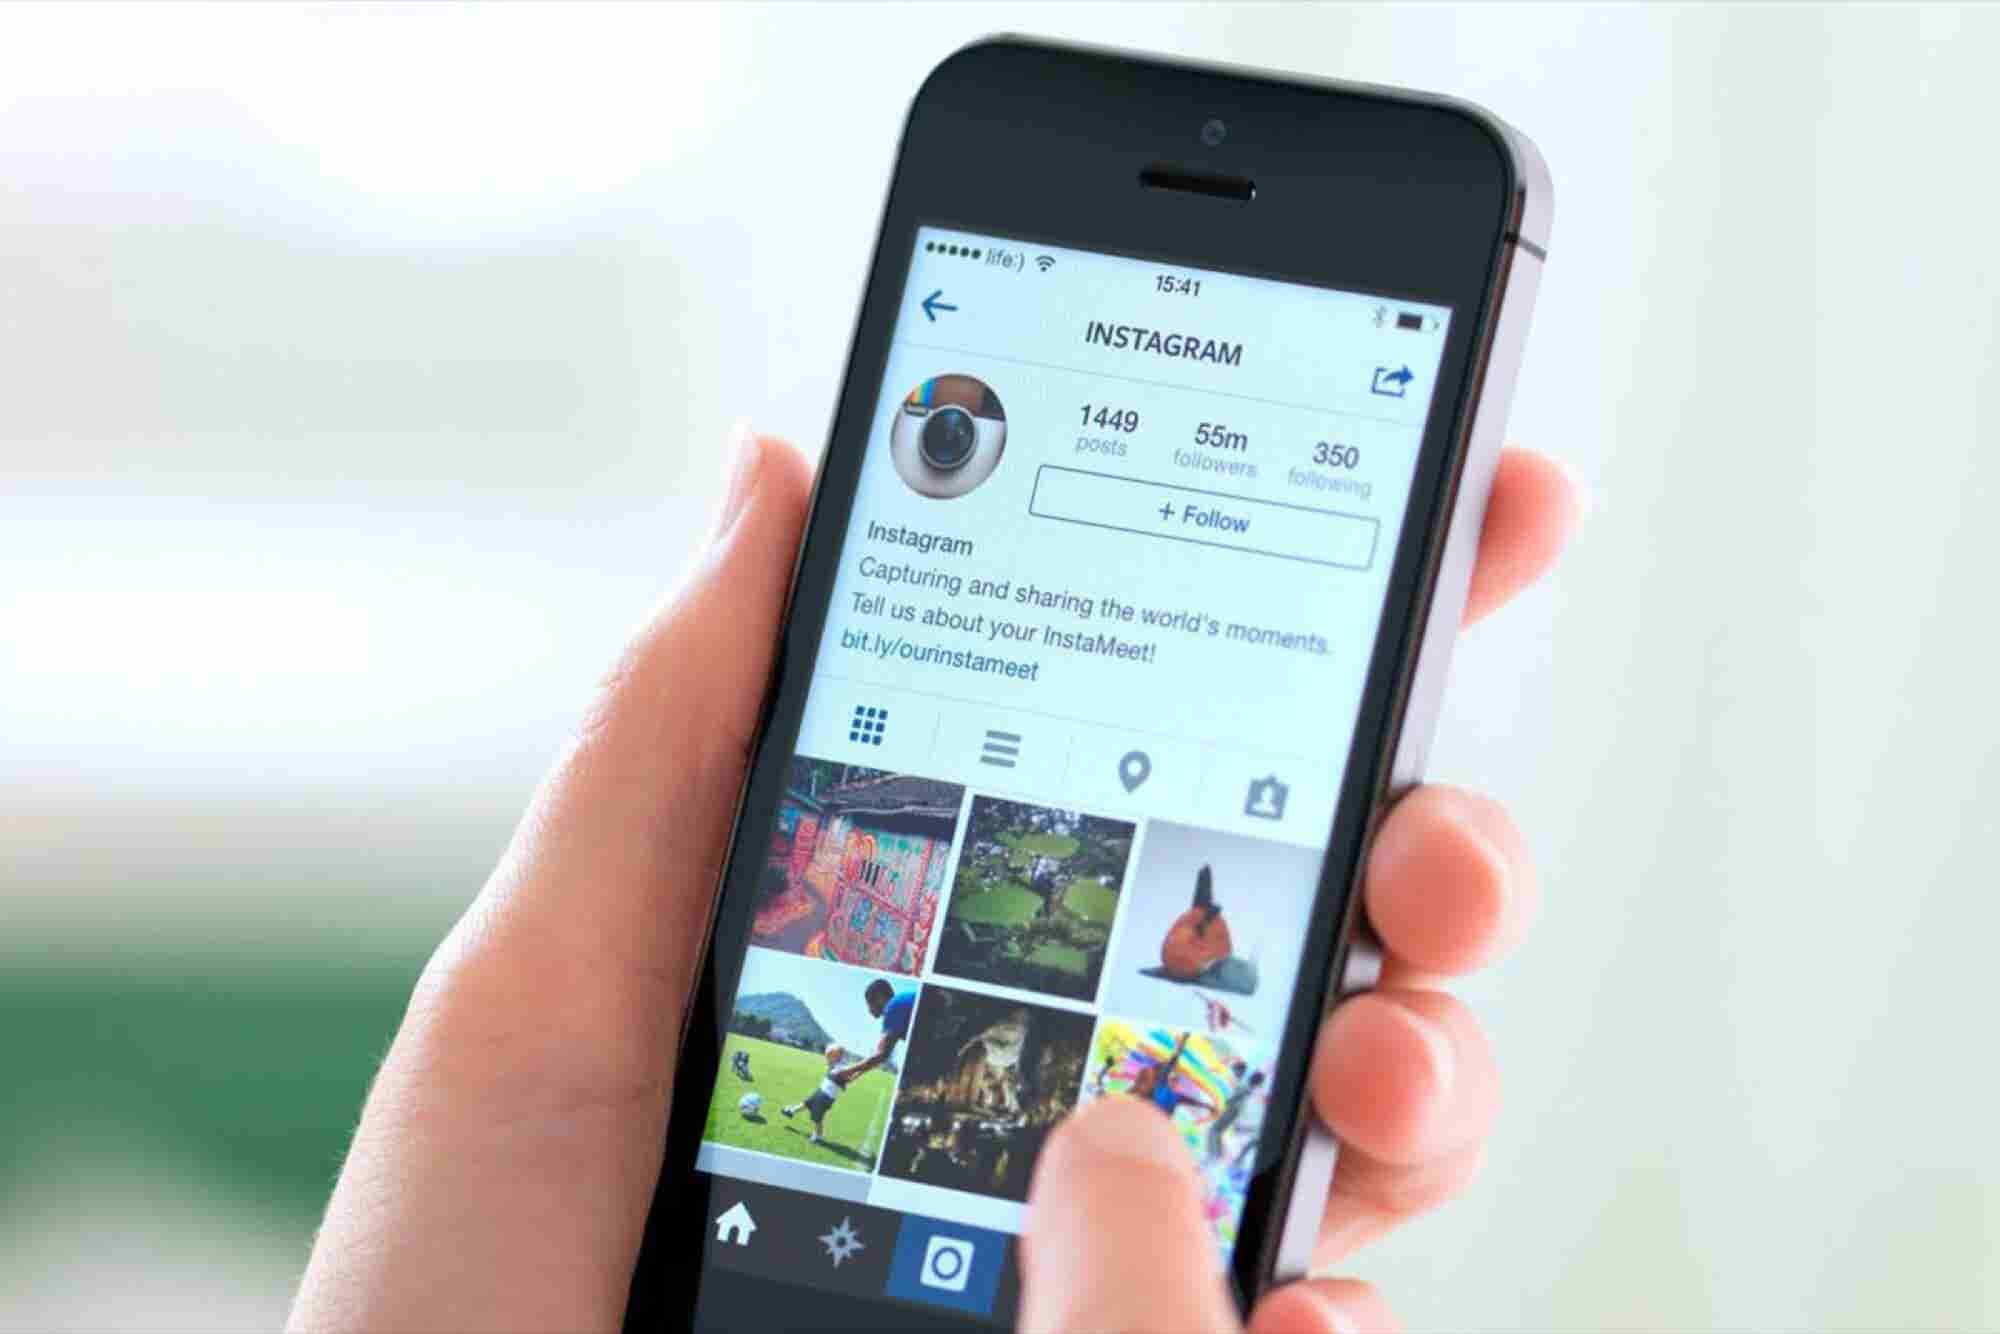 Instagram Now Valued at $35 Billion, Analyst Says